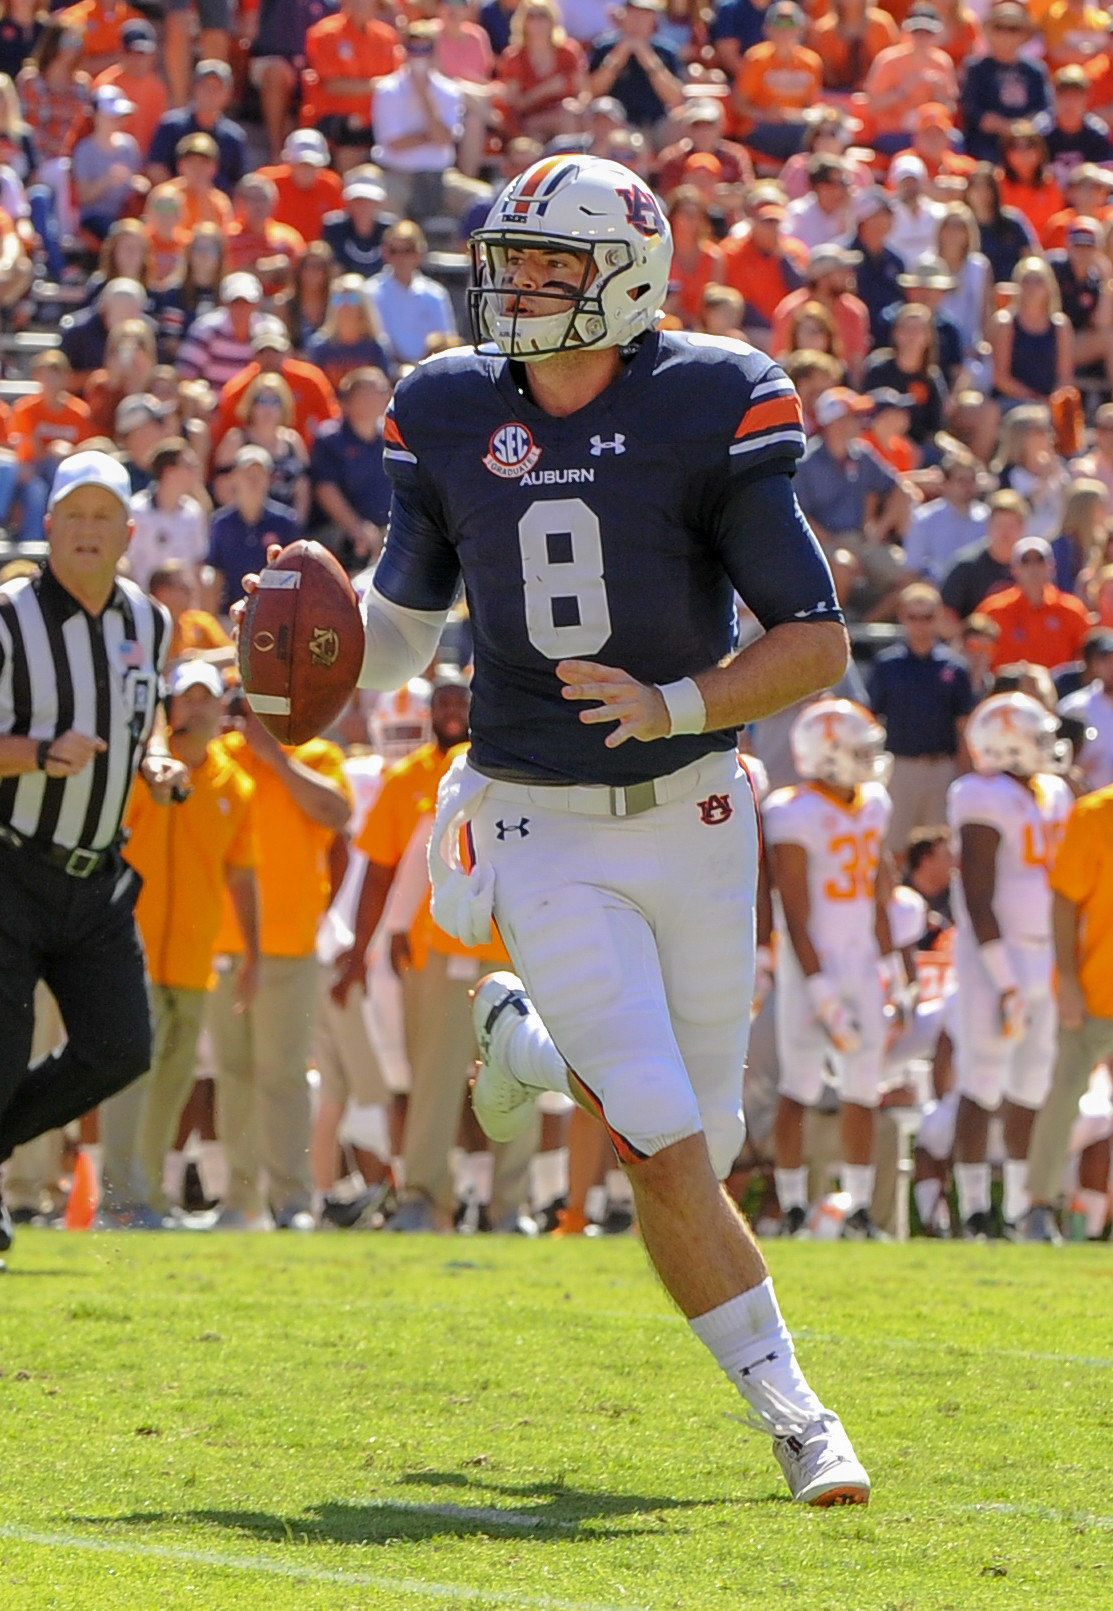 Auburn Tigers quarterback Jarrett Stidham (8) looks to throw during the first half of Saturday's game, at Jordan-Hare Stadium in Auburn, AL. Daily Mountain Eagle -  Jeff Johnsey